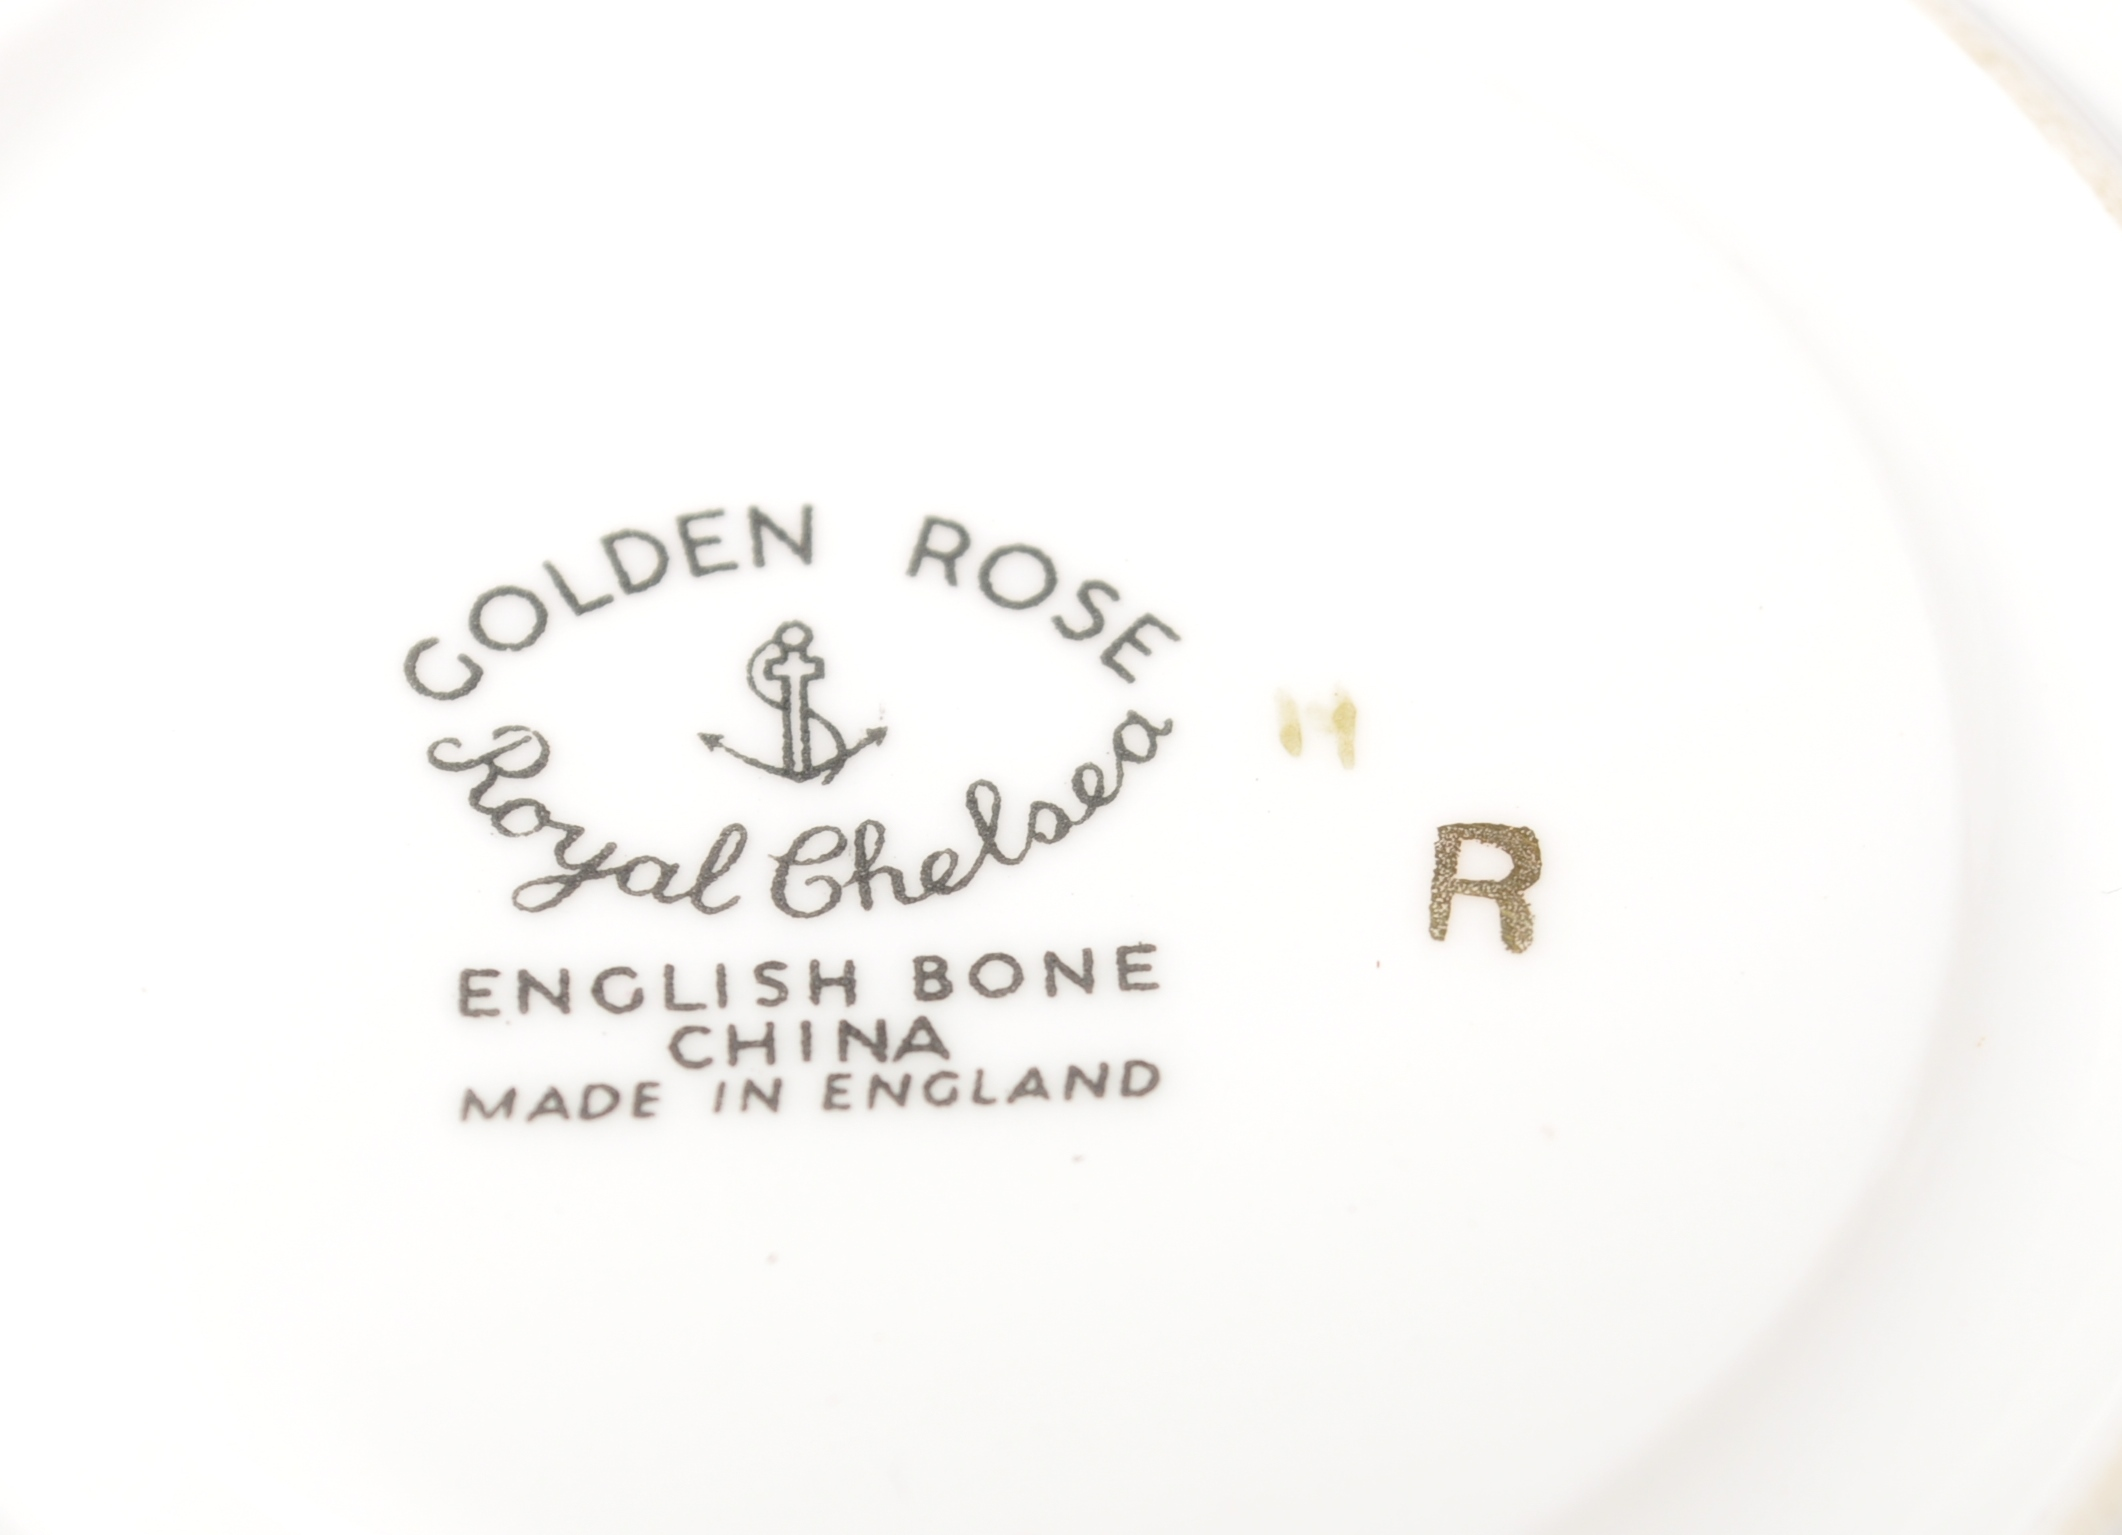 COLLECTION OF 20TH CENTURY ROYAL CHELSEA ENGLISH ROSE CHINA - Image 7 of 7